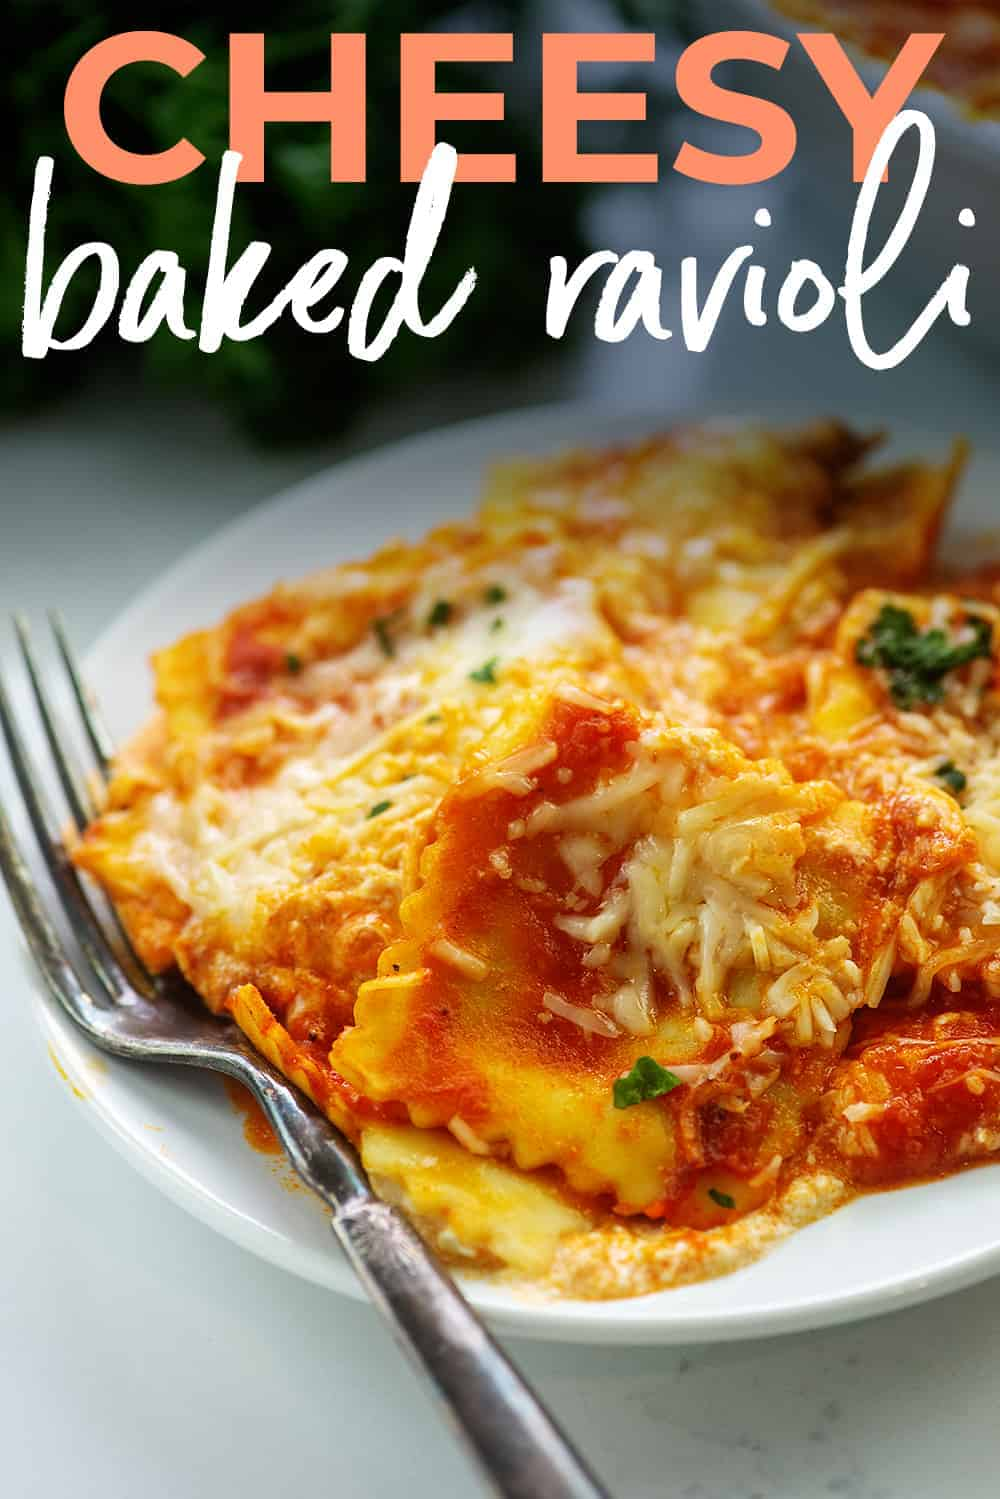 cheesy baked ravioli on white plate with text for Pinterest.